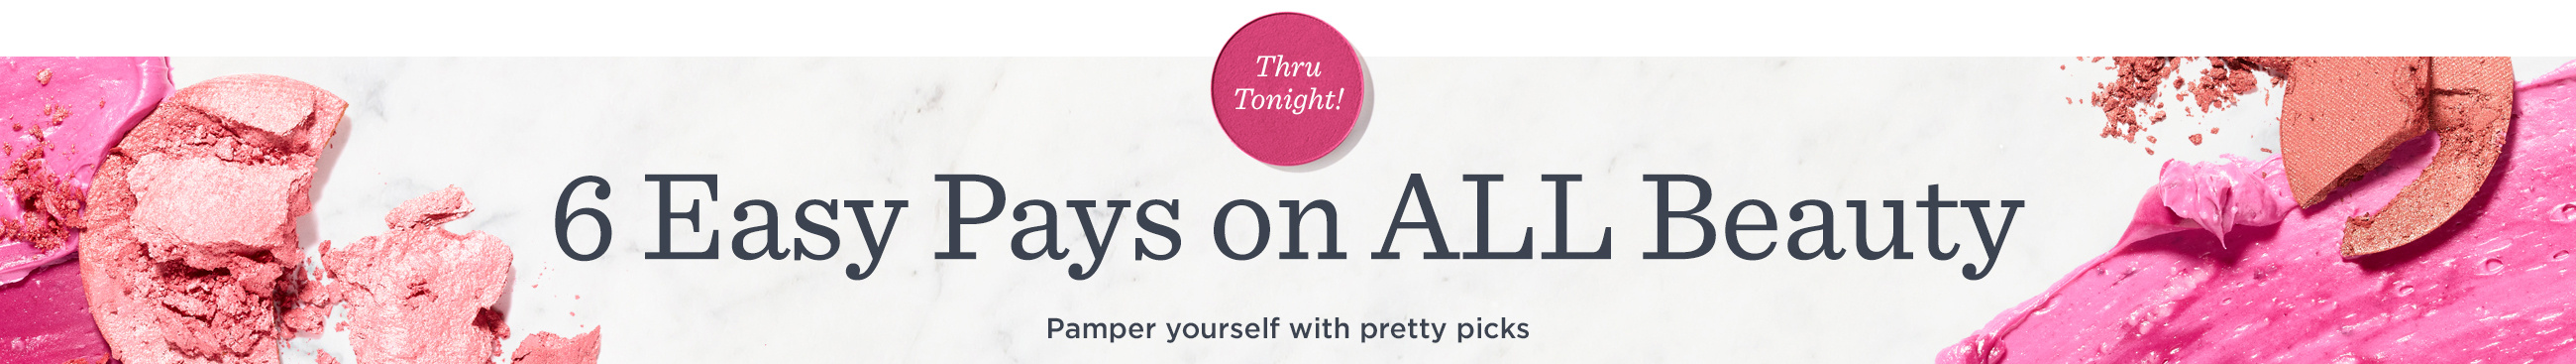 6 Easy Pays on ALL Beauty — Thru tonight! Pamper yourself with pretty picks